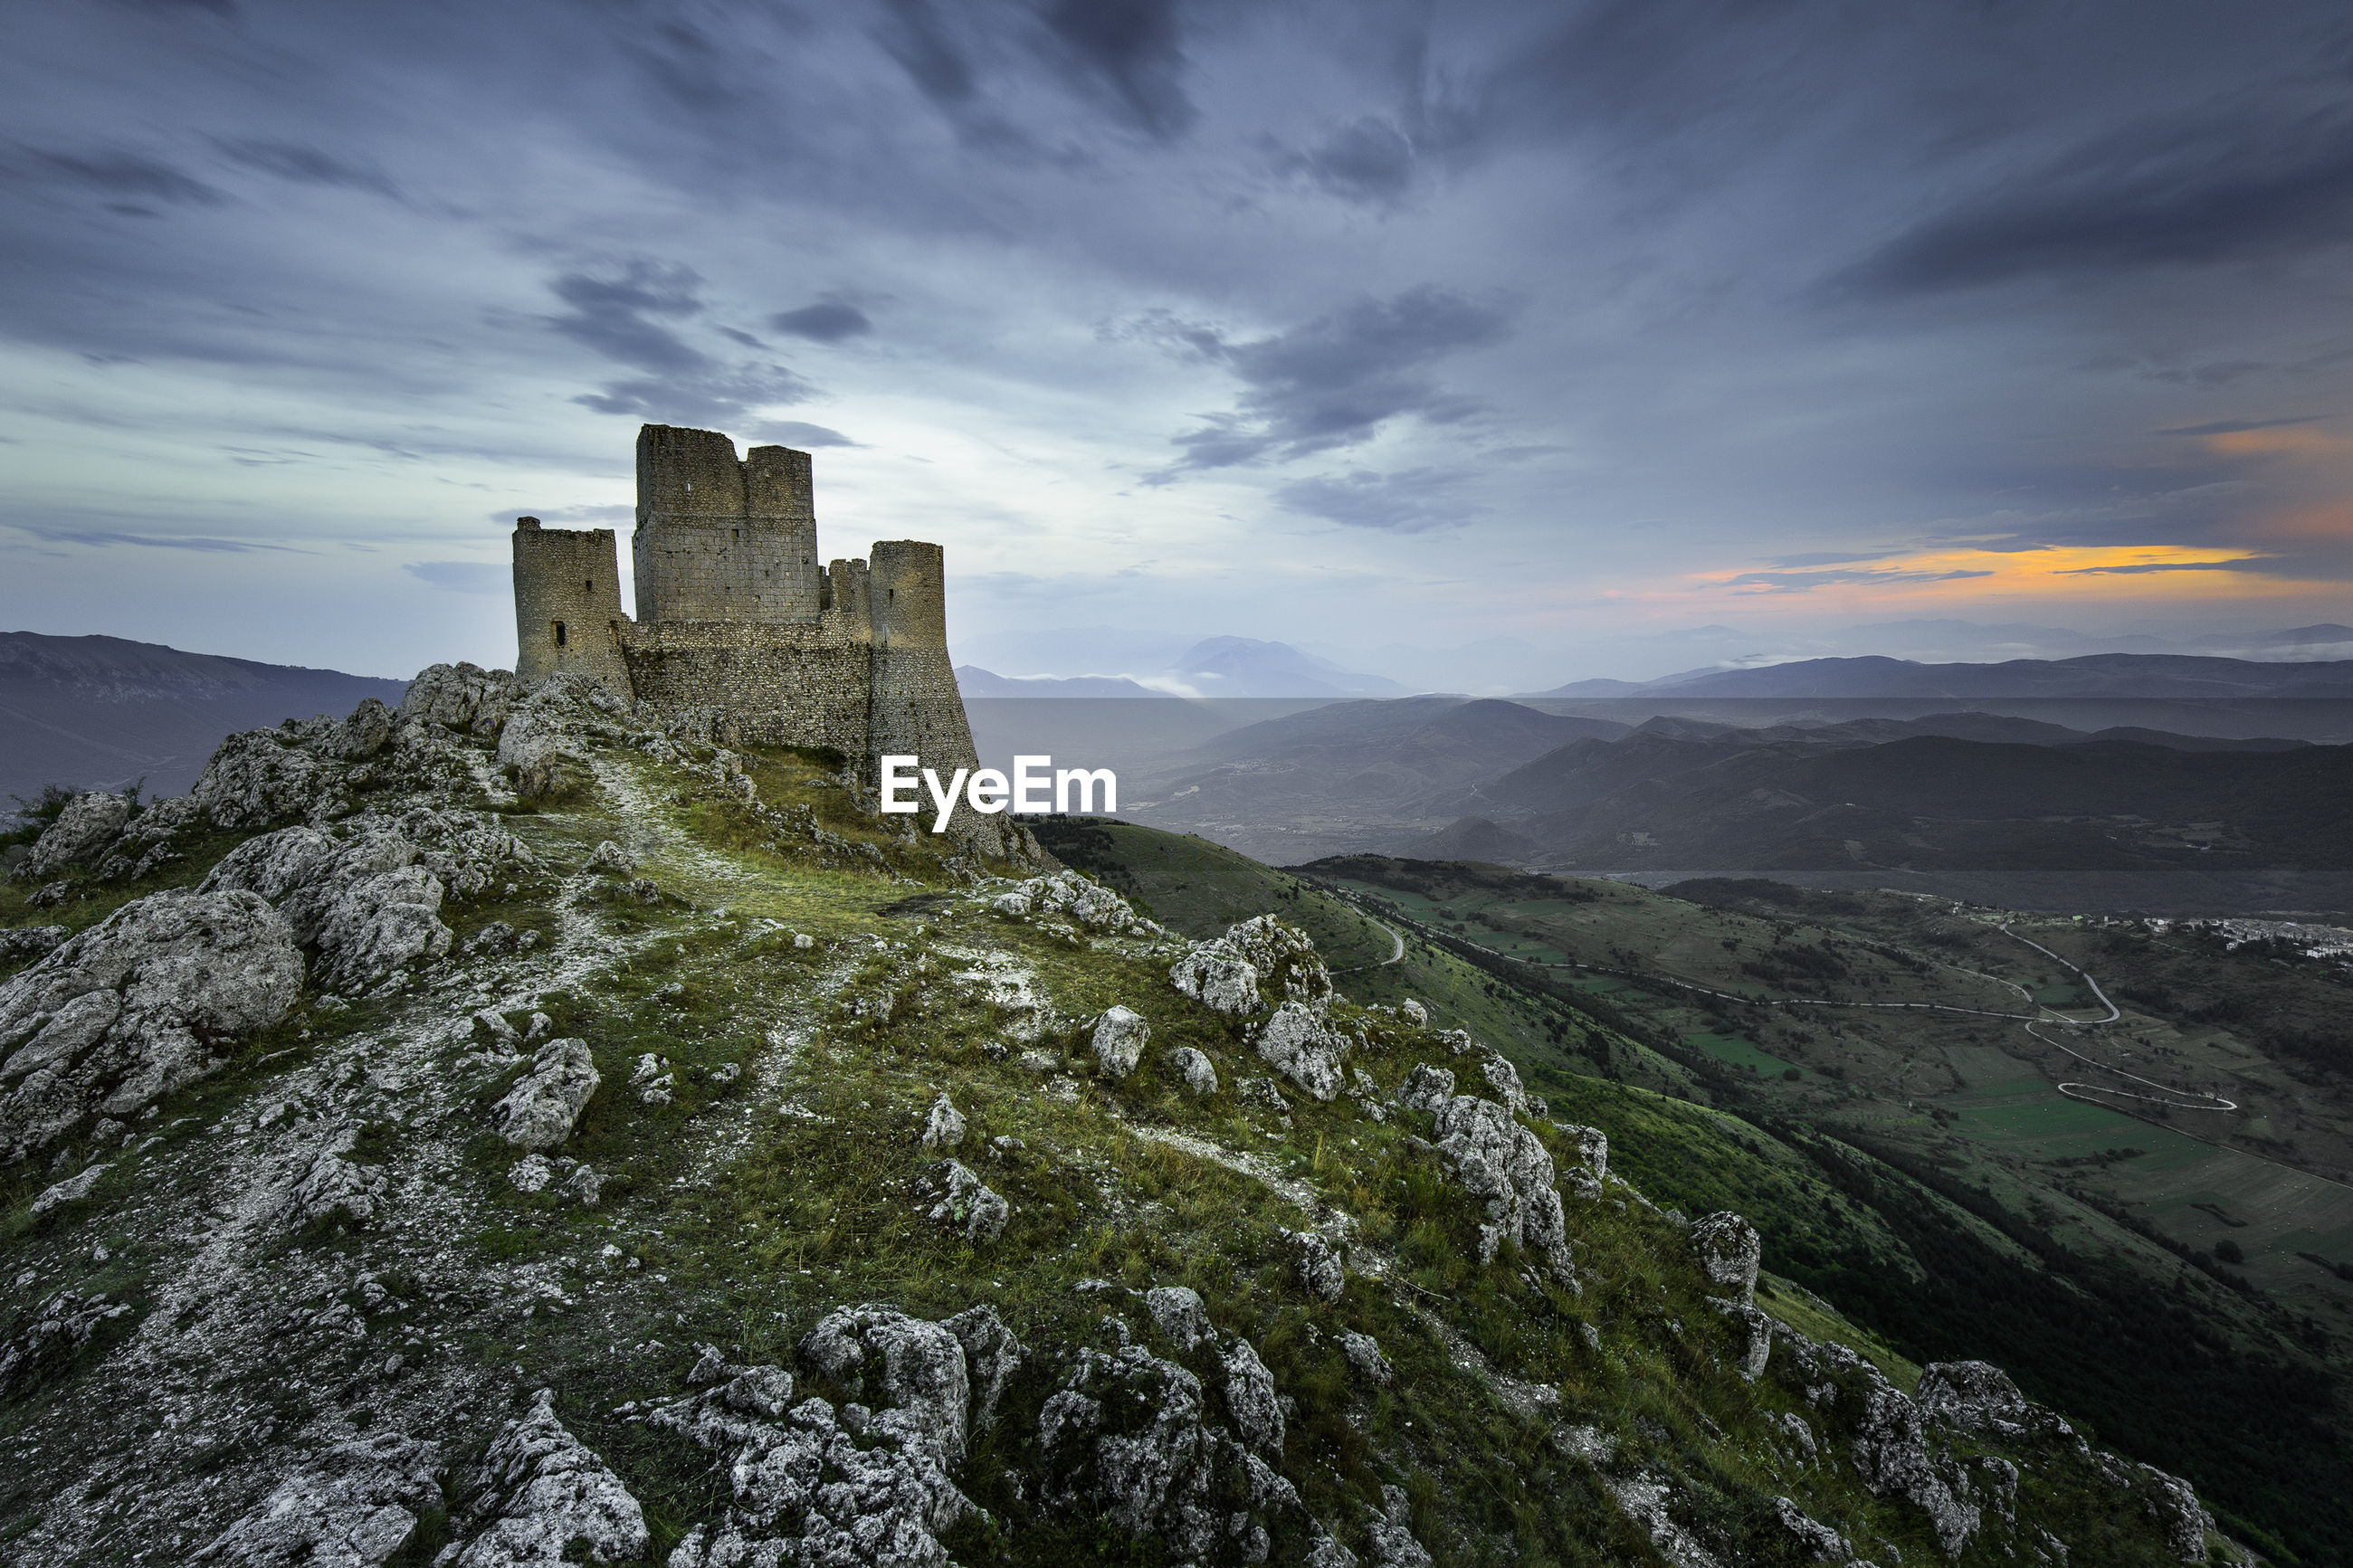 Old ruin on mountain against sky during sunset